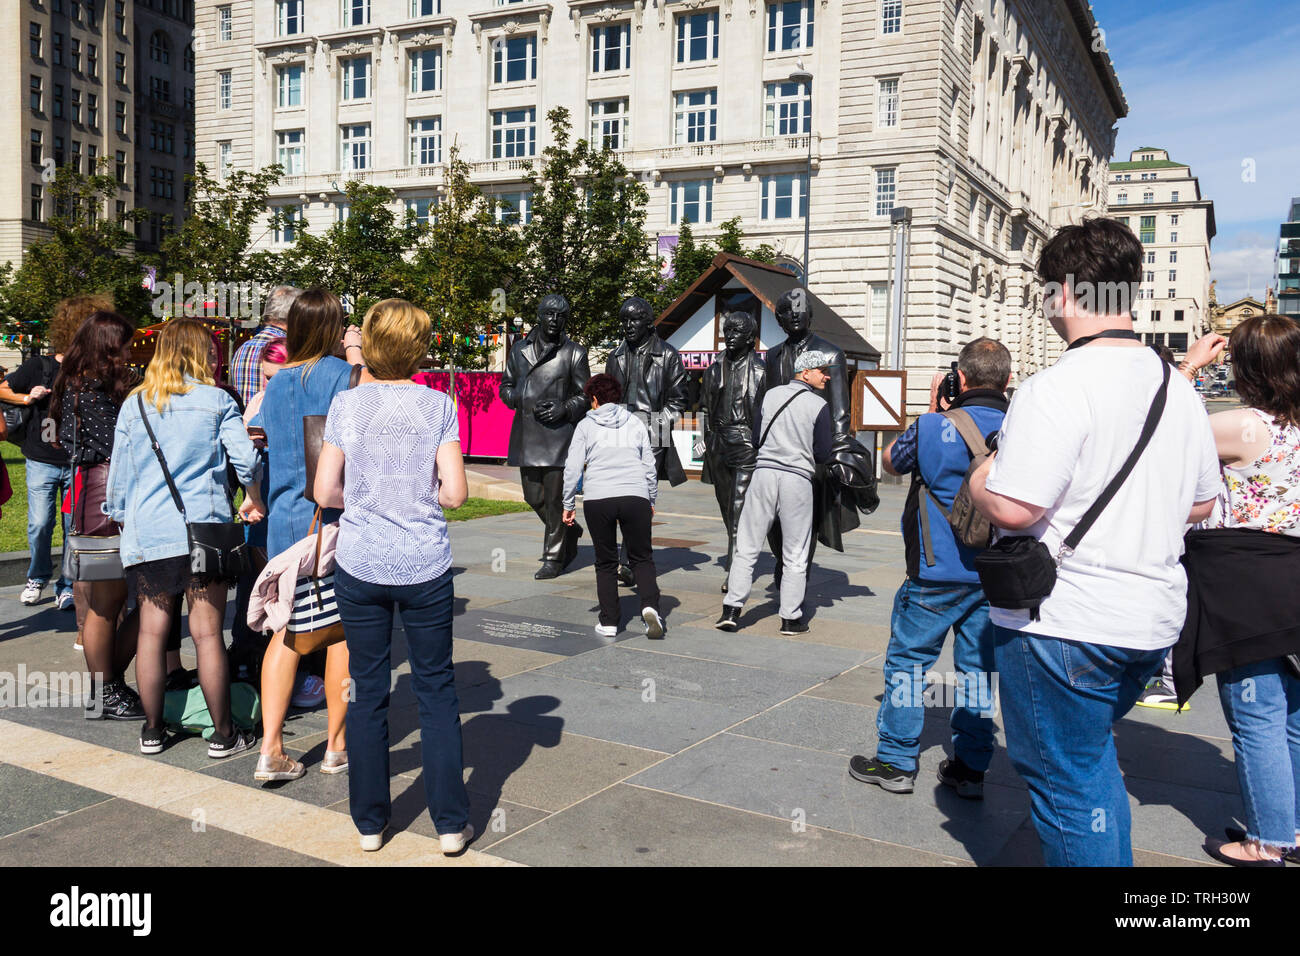 Tourists viewing the Beatles statue on Liverpool's Pier Head. The statue was unveiled in December 2015 and was a gift to the city by the Cavern Club. - Stock Image